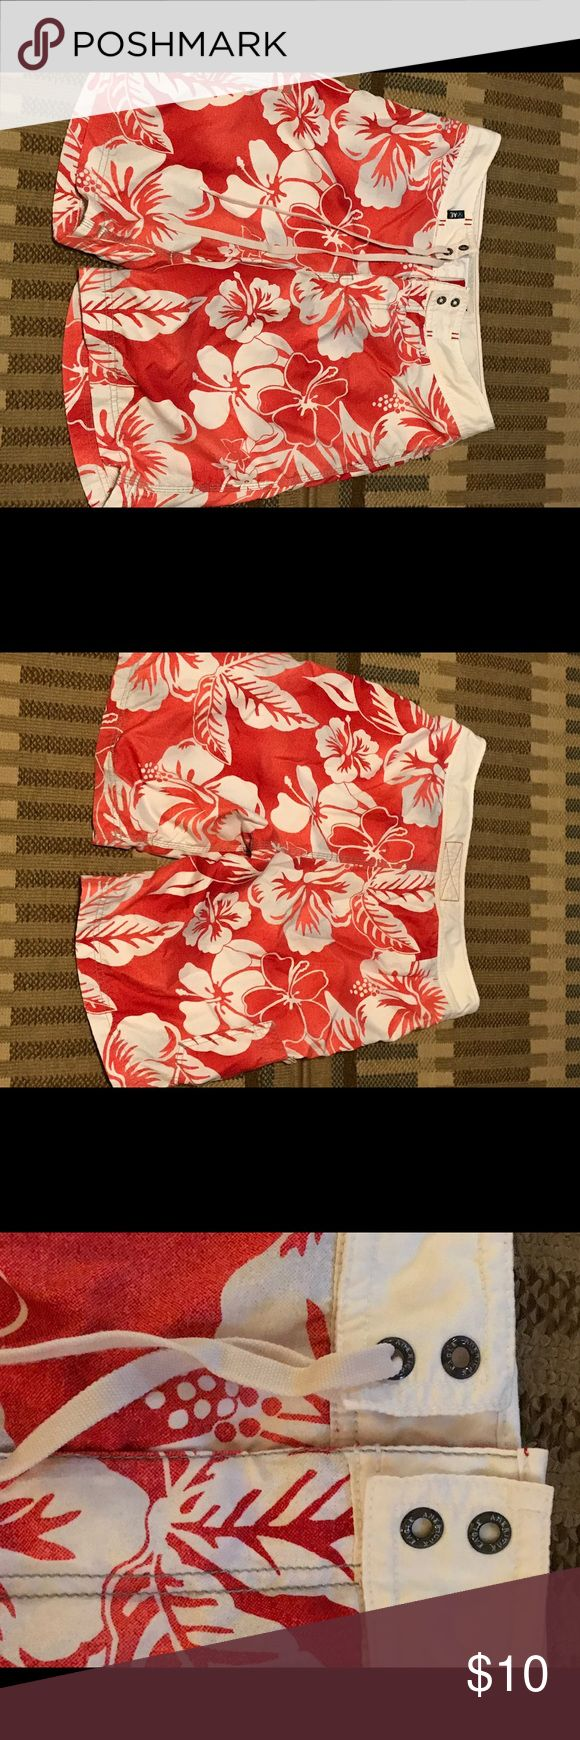 American Eagle Board Shorts Men's Red floral American Eagle Board Shorts - preowned - size 31 American Eagle Outfitters Shorts Athletic